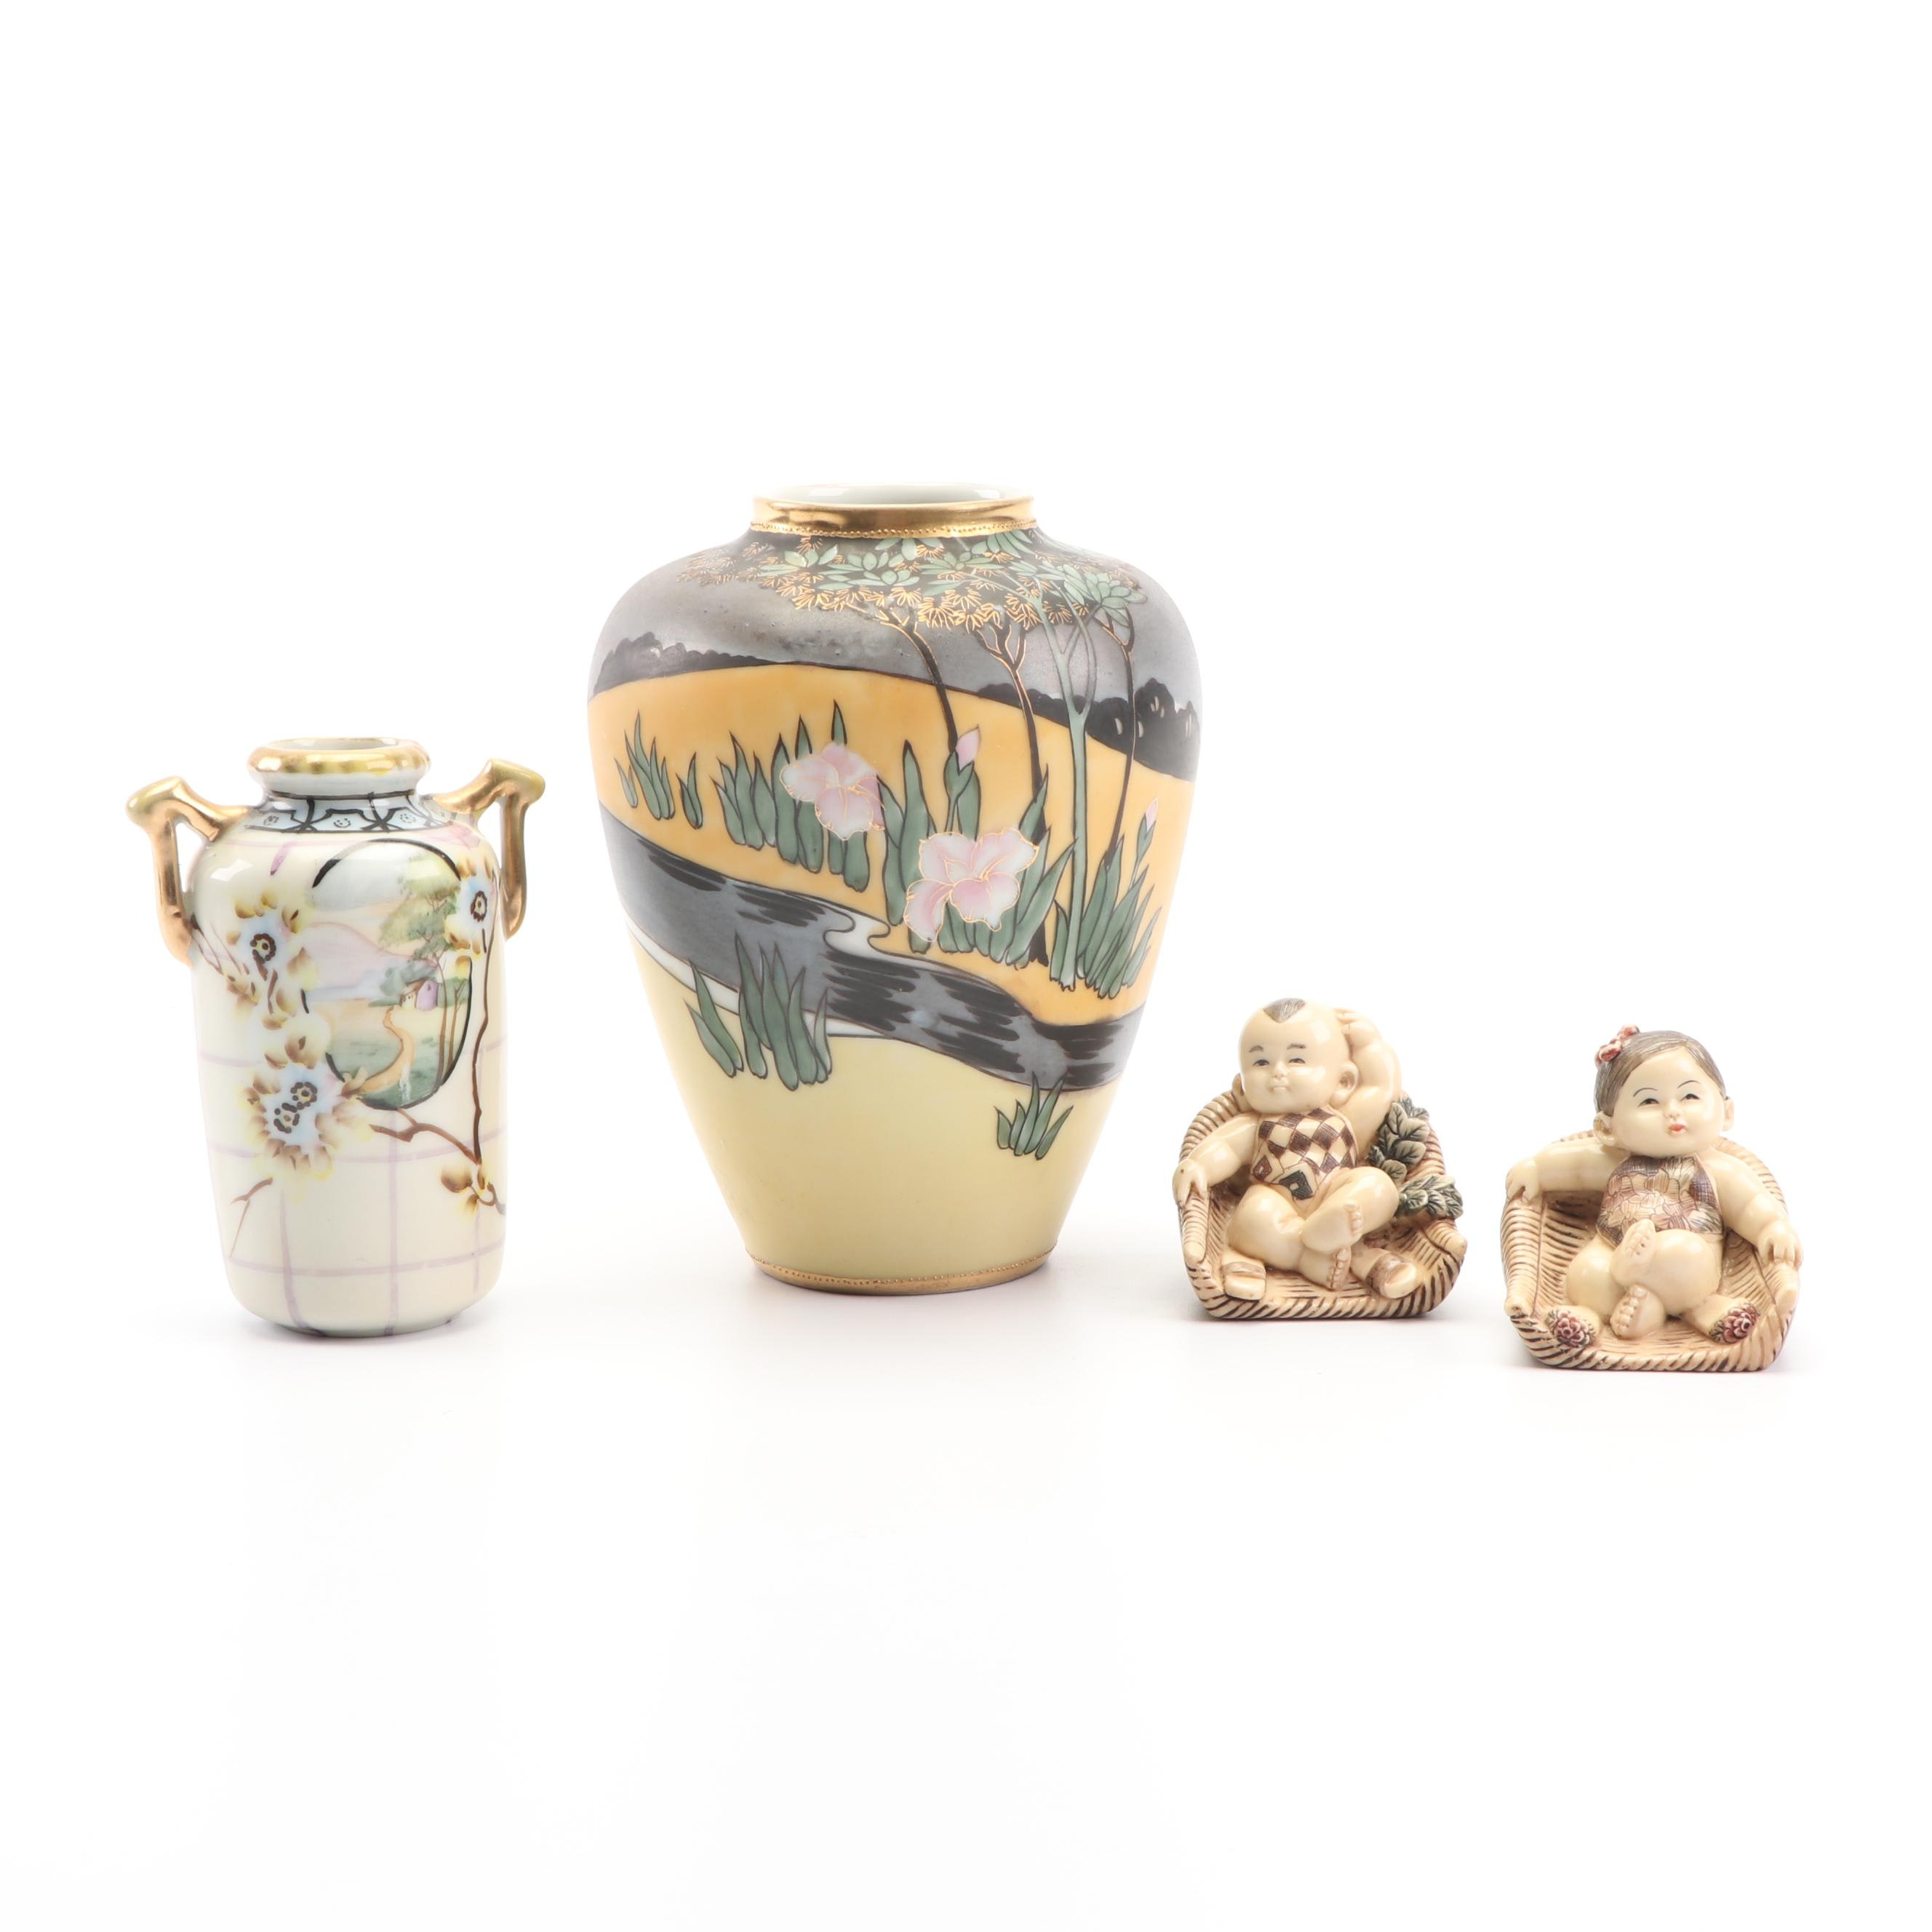 Hand-Painted Nippon Vases with Child Figurines